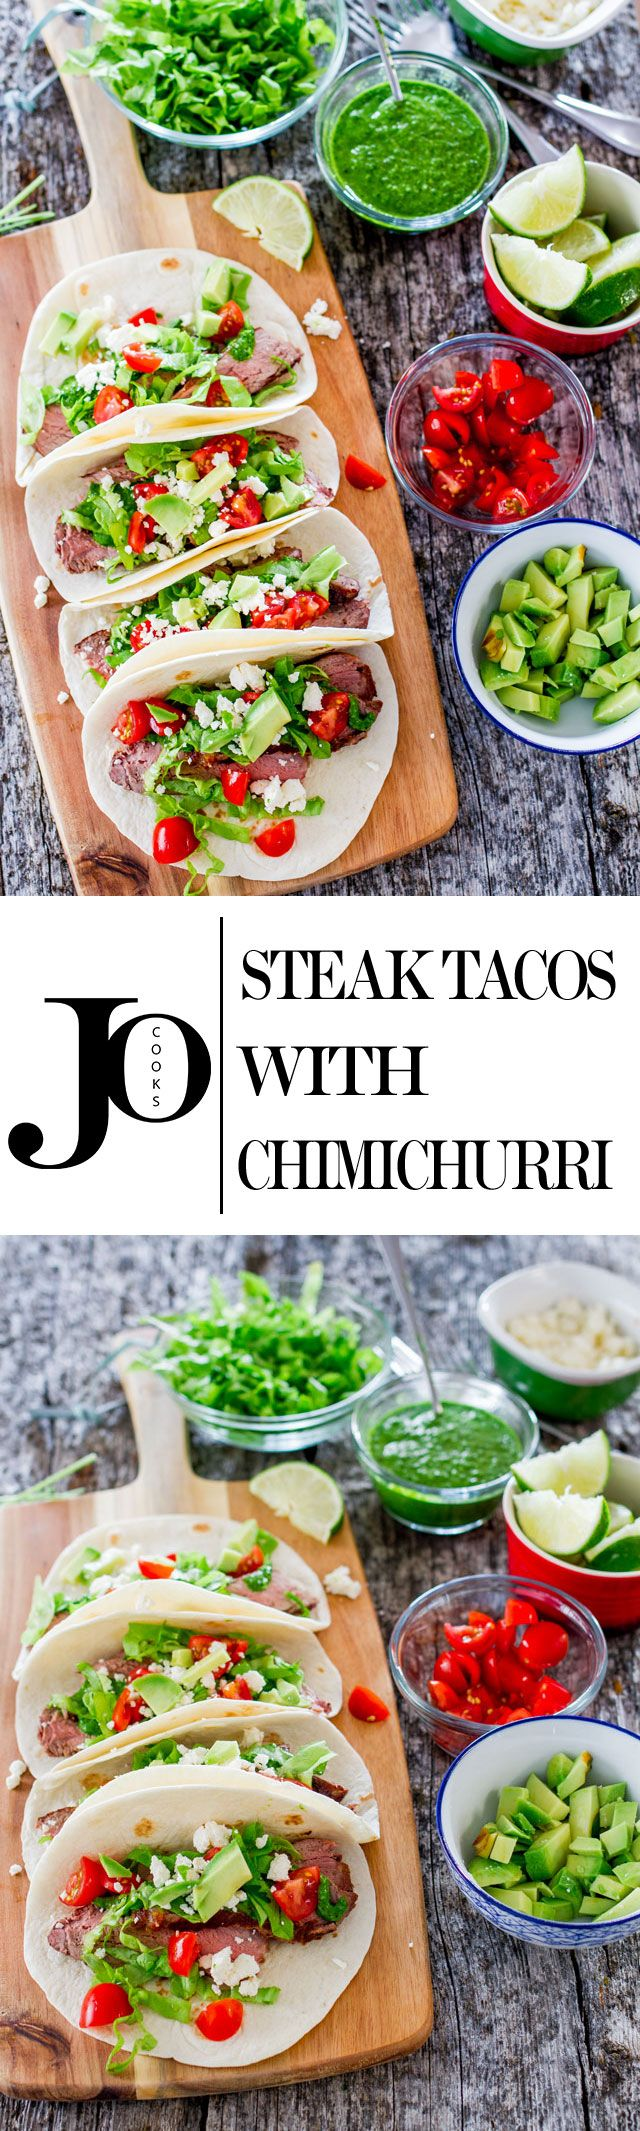 Steak Tacos with Chimichurri Sauce - use epicure chimichurri!